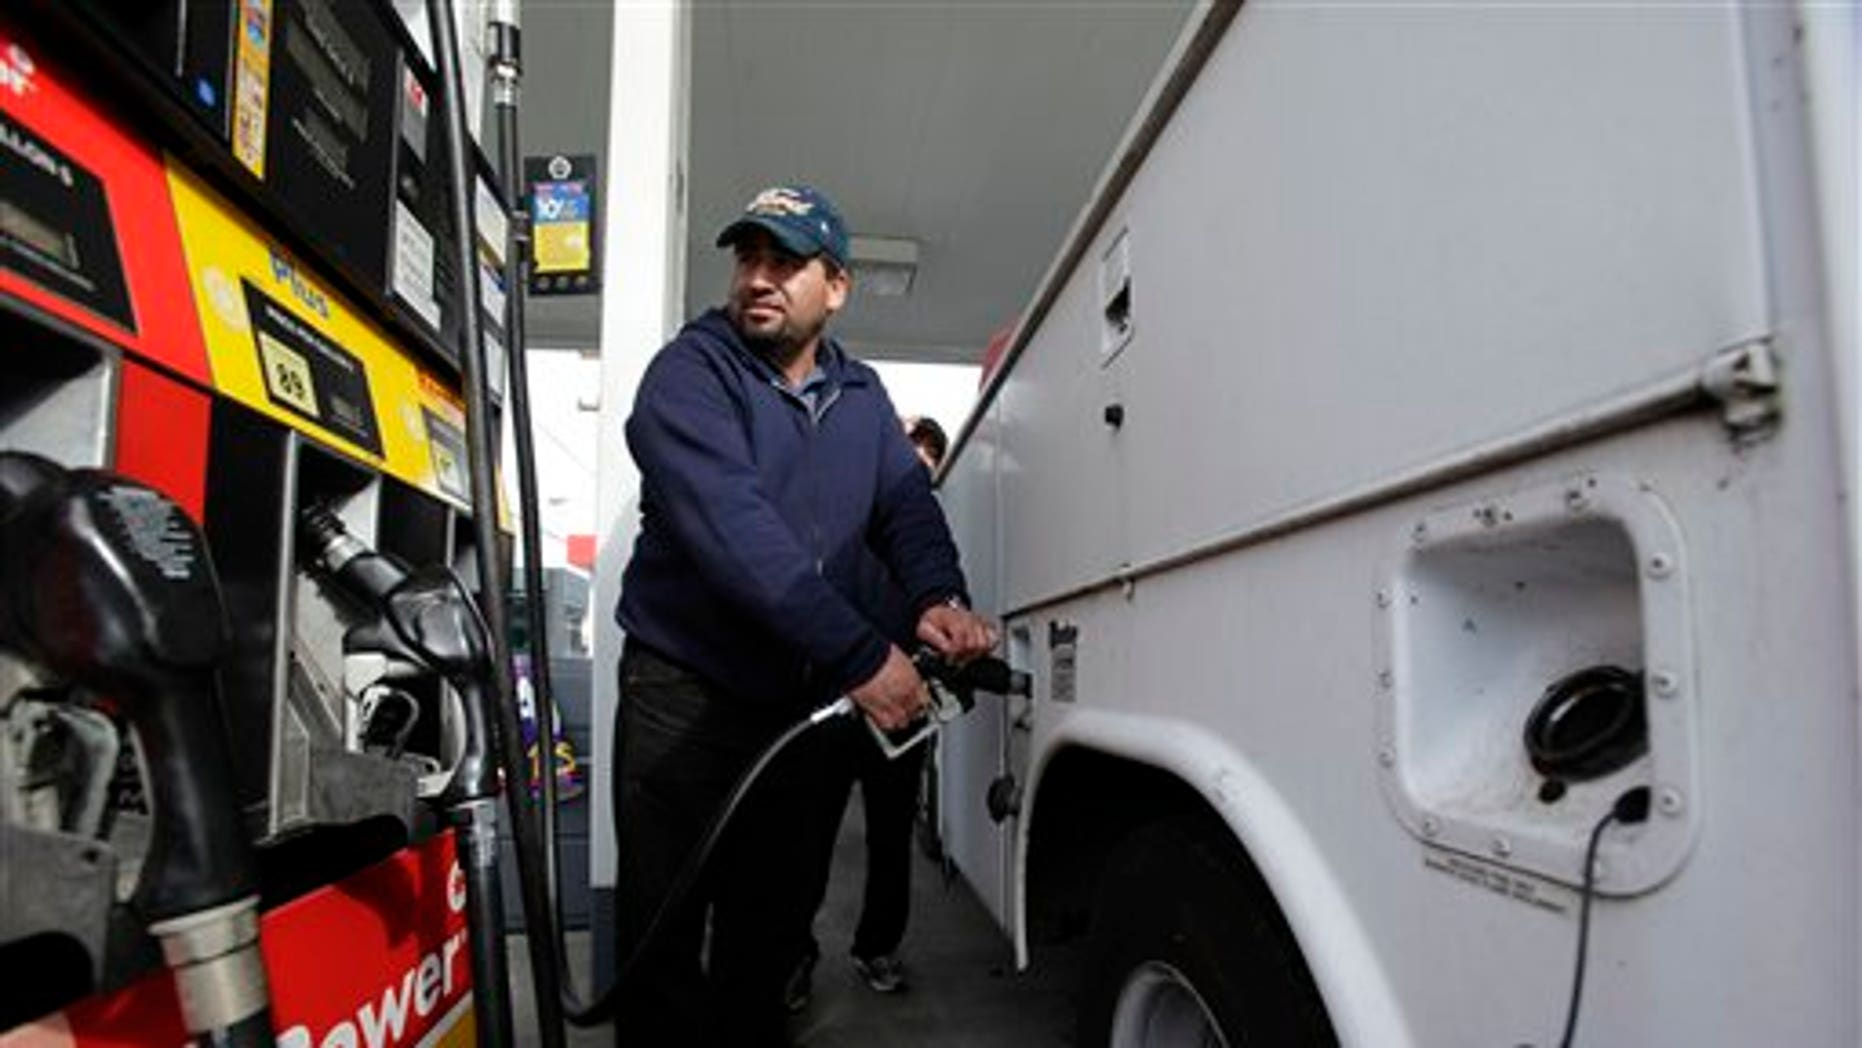 April 15: A motorist fills up his tank at a Shell gas station in Seattle.